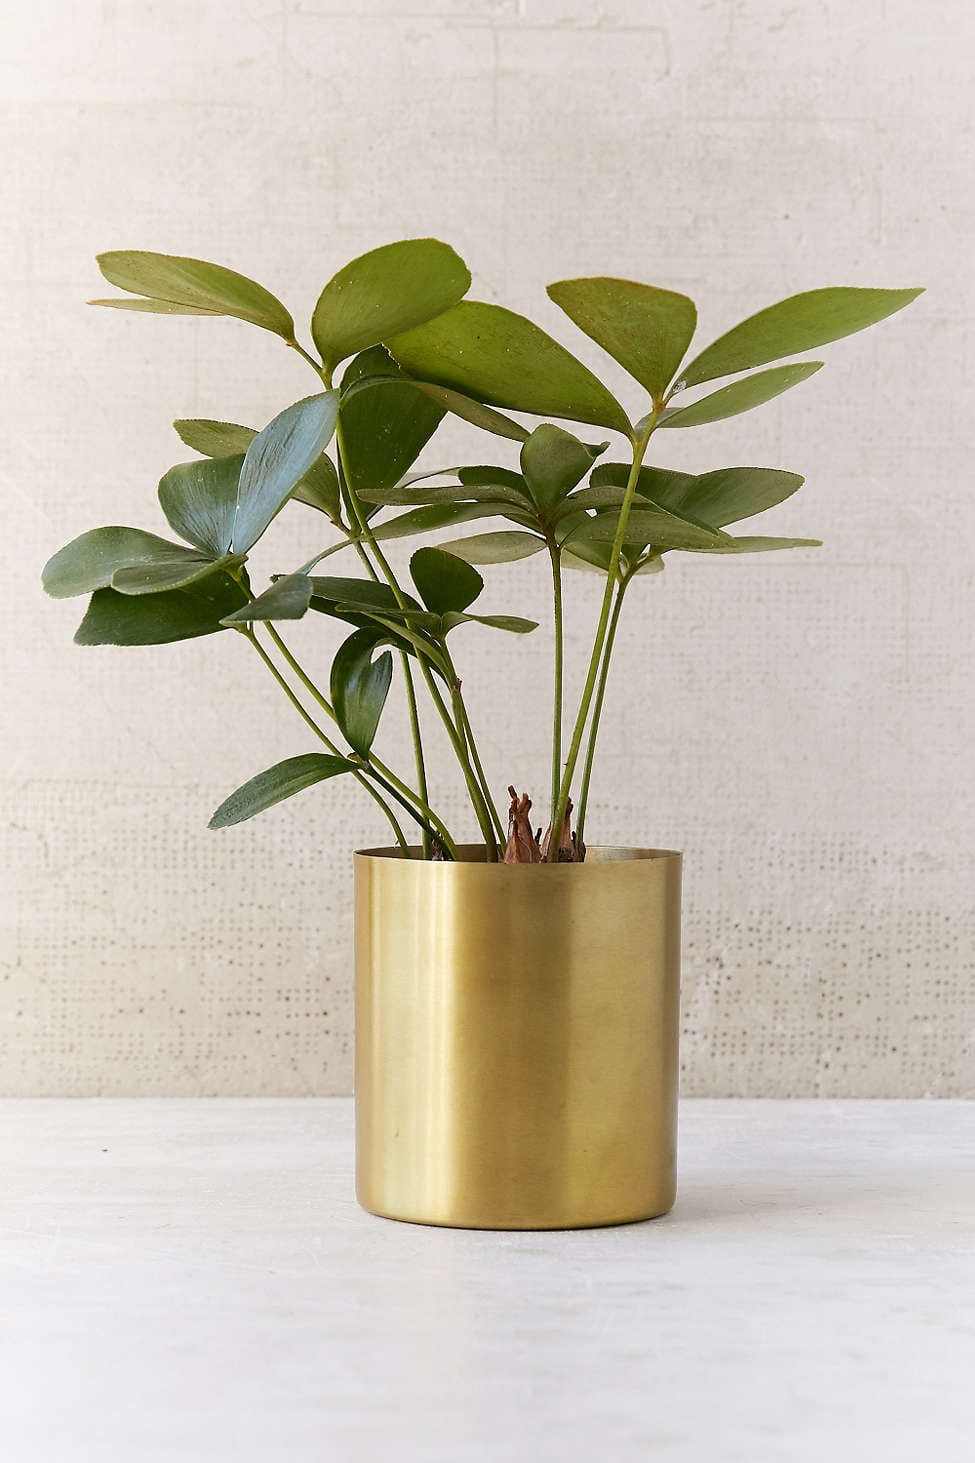 Go for Gold: 5 Glam Golden Touches for Your Home